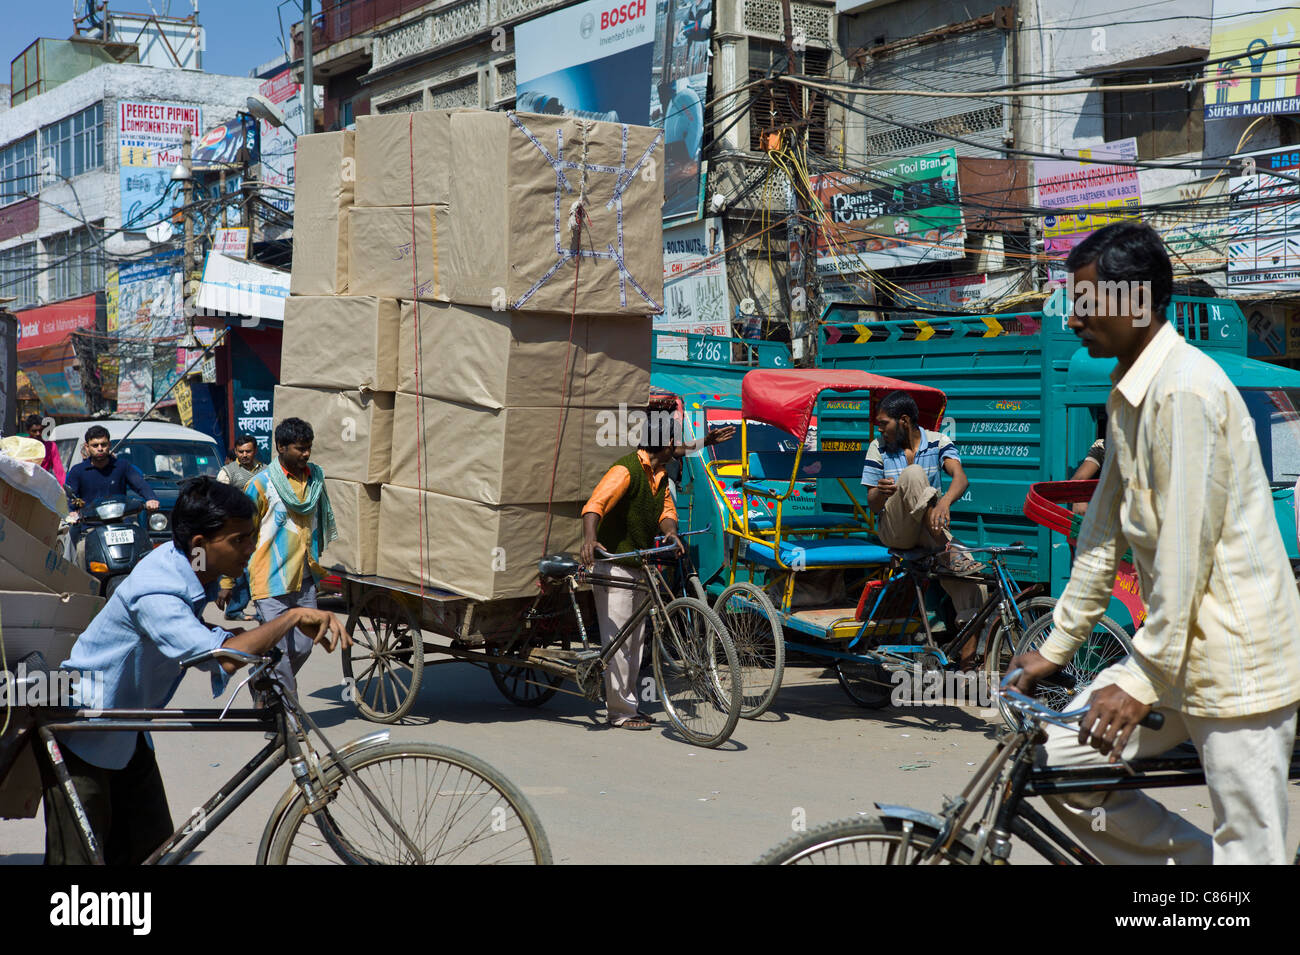 Crowded street scene at Chawri Bazar in Old Delhi, India - Stock Image